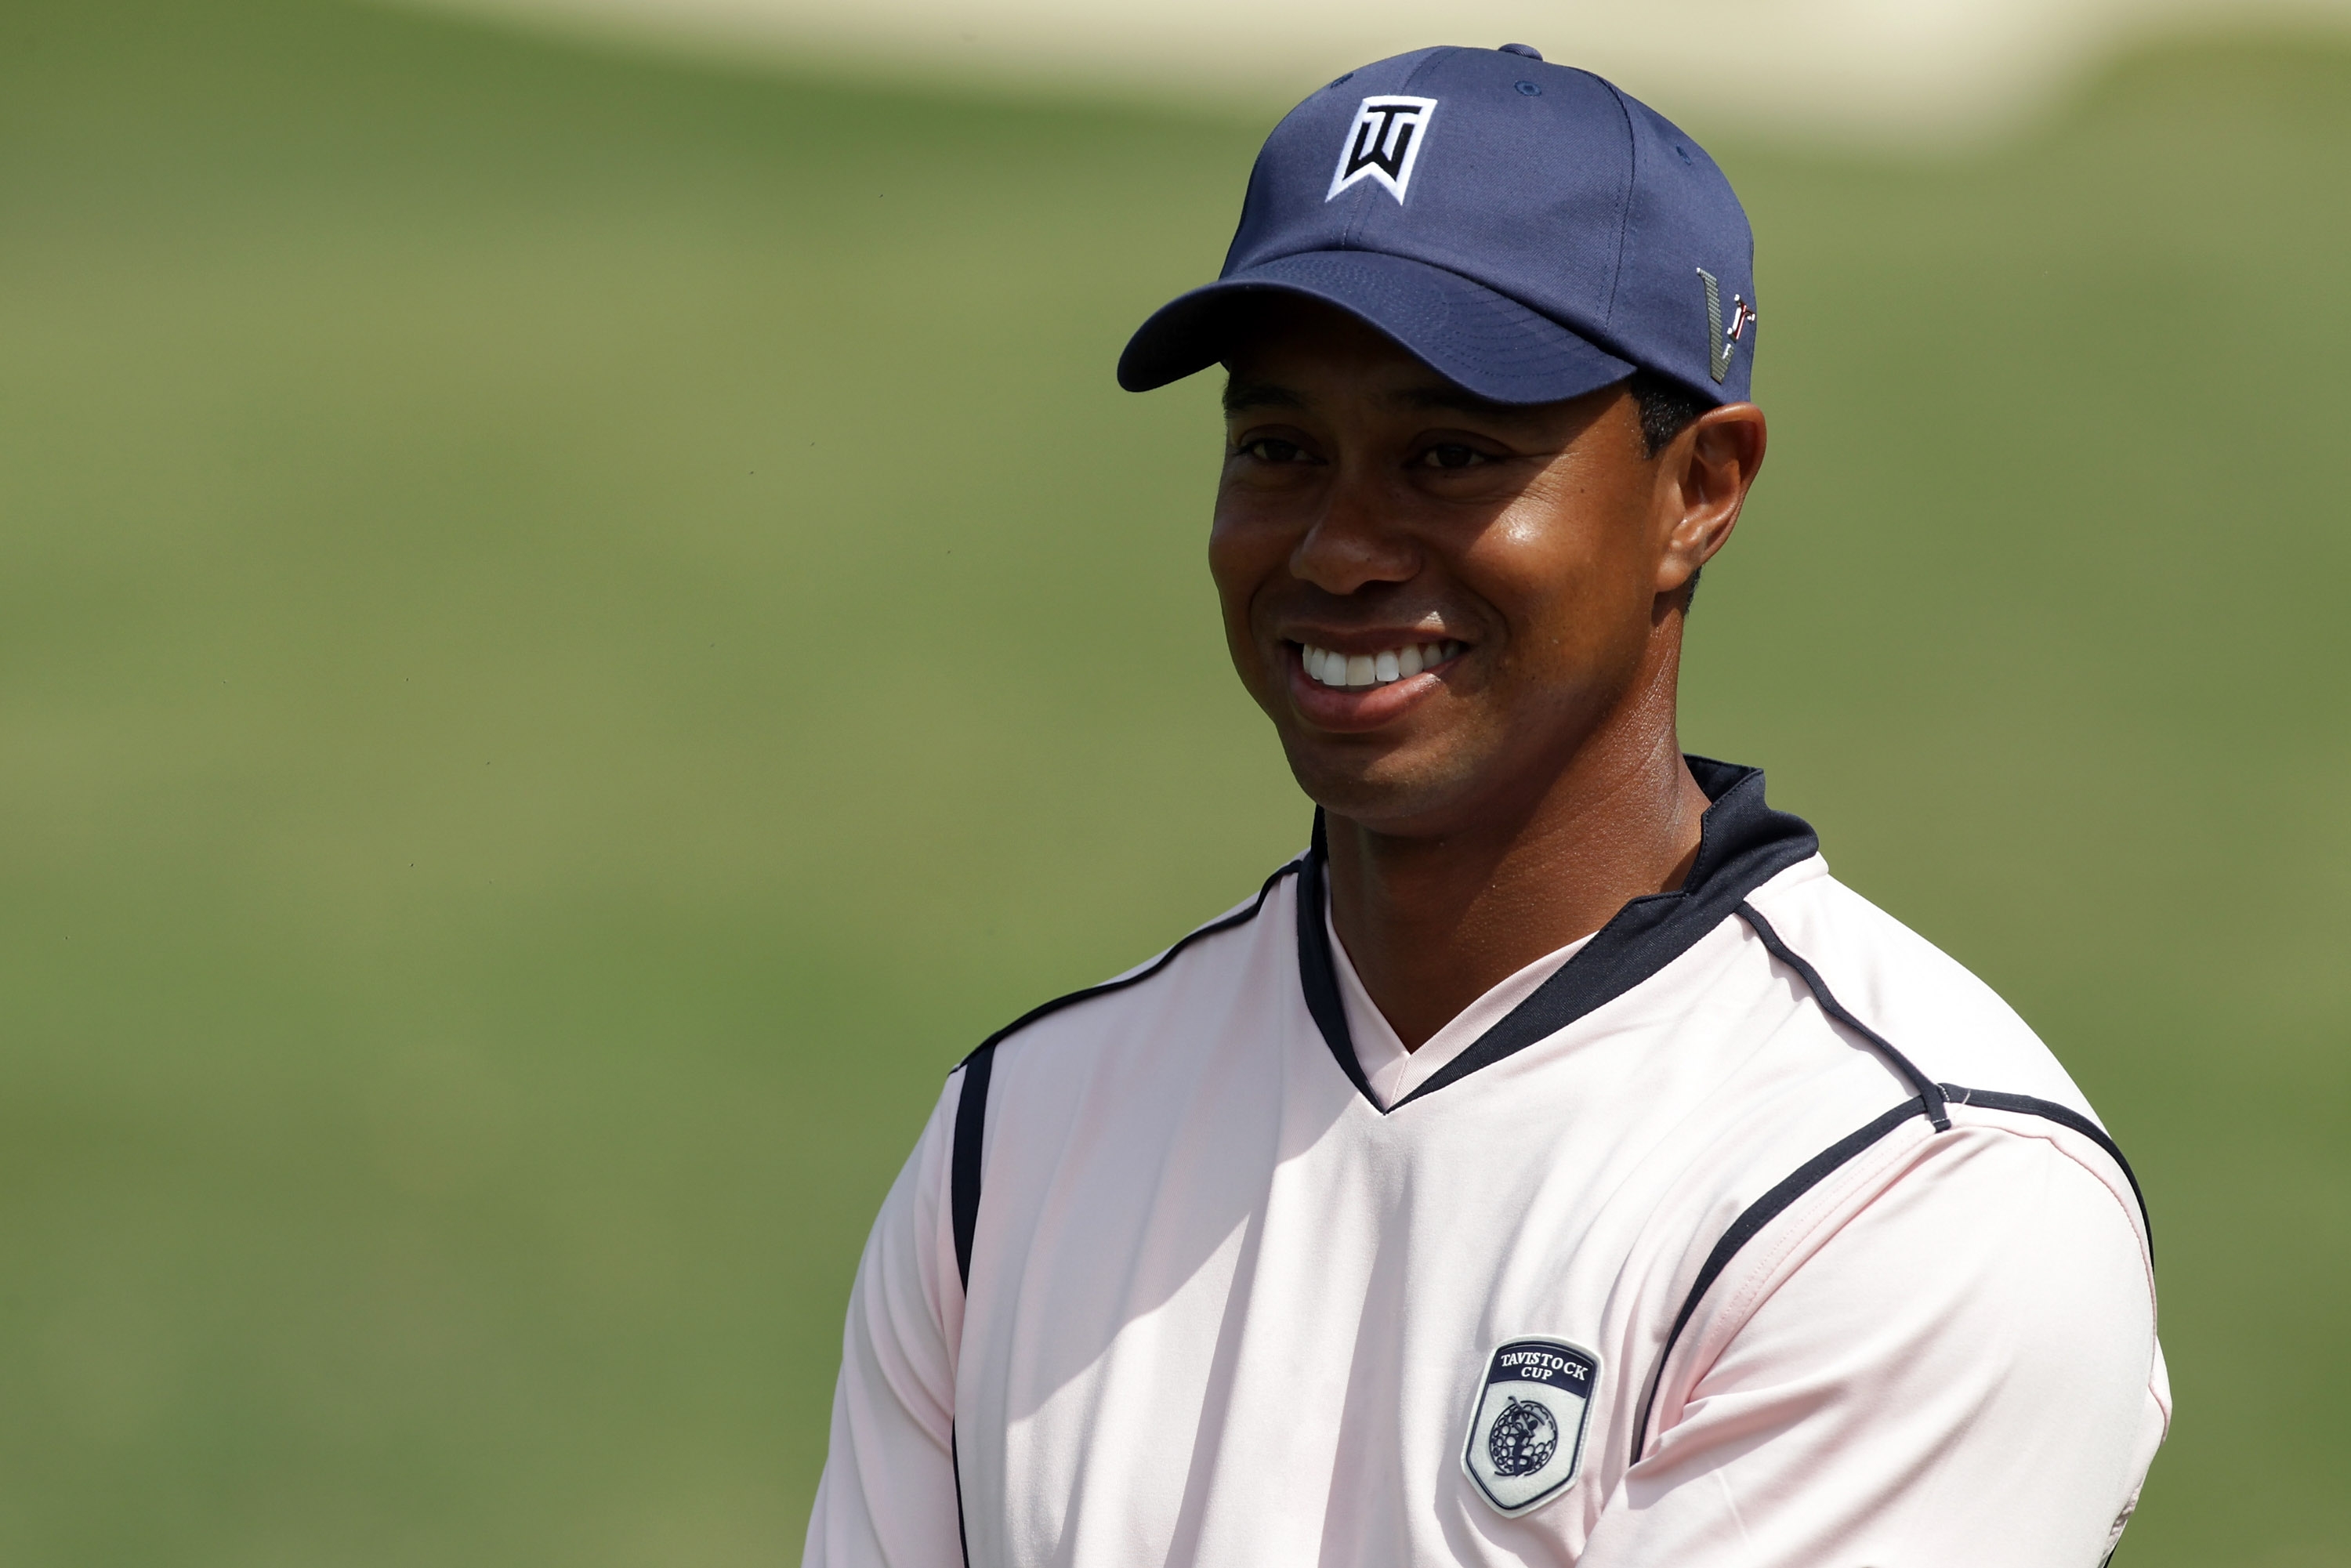 WINDERMERE, FL - MARCH 15:  Tiger Woods of the USA and the Albany Club on the 3rd hole during the second day of the 2011 Tavistock Cup at Isleworth Golf and Country Club on March 15, 2011 in Windermere, Florida.  (Photo by David Cannon/Getty Images)